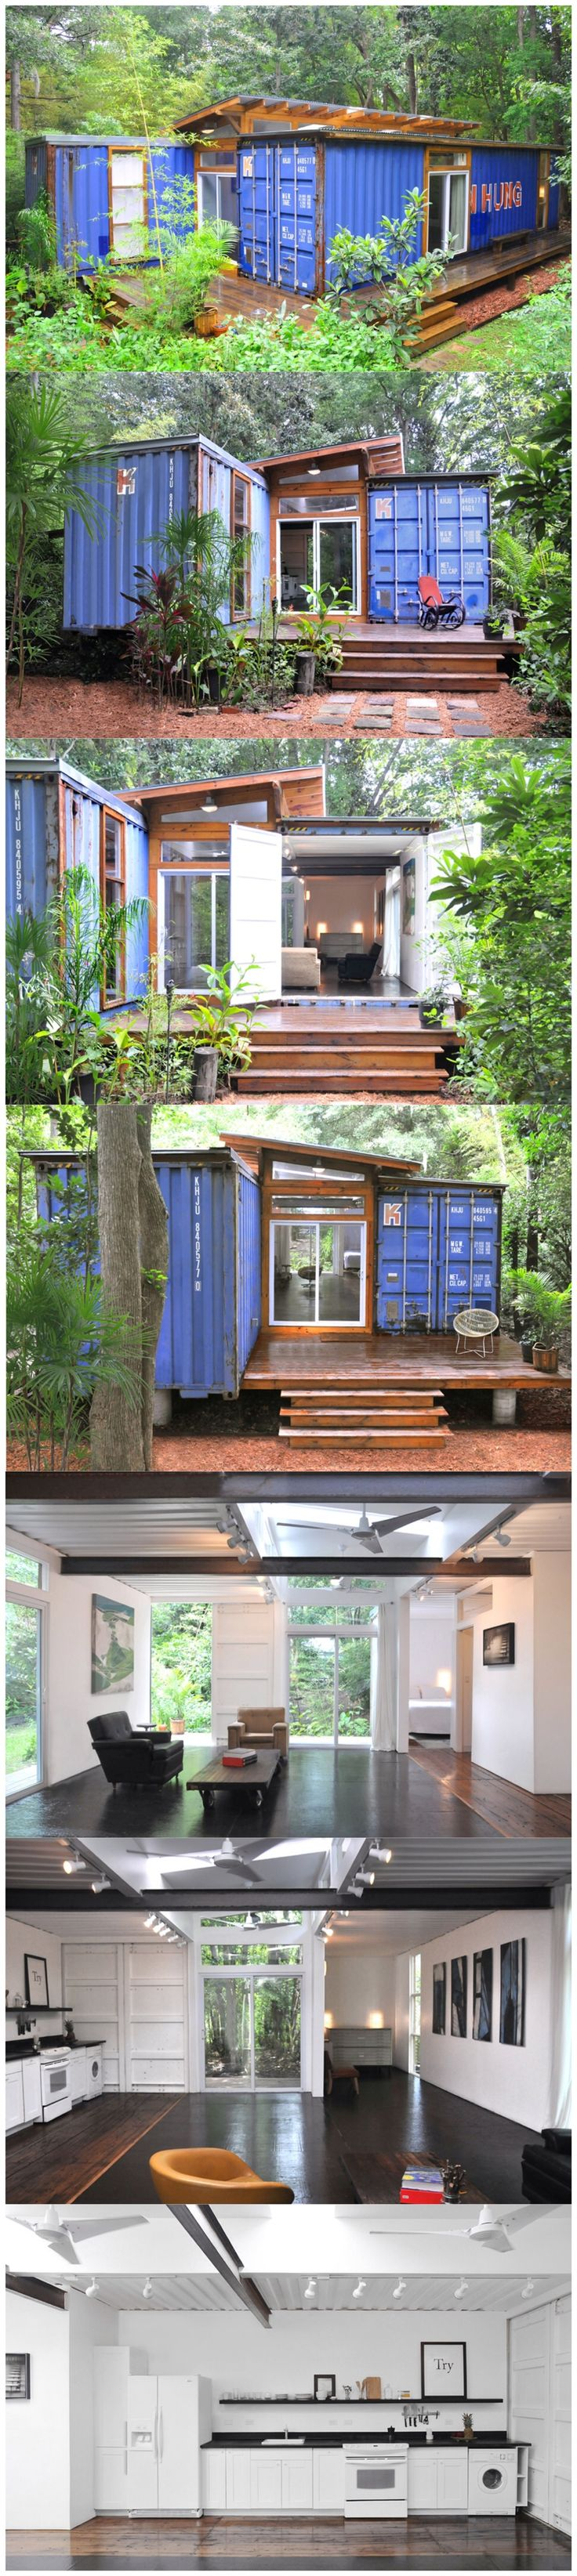 best 25+ 20ft shipping container ideas on pinterest | container